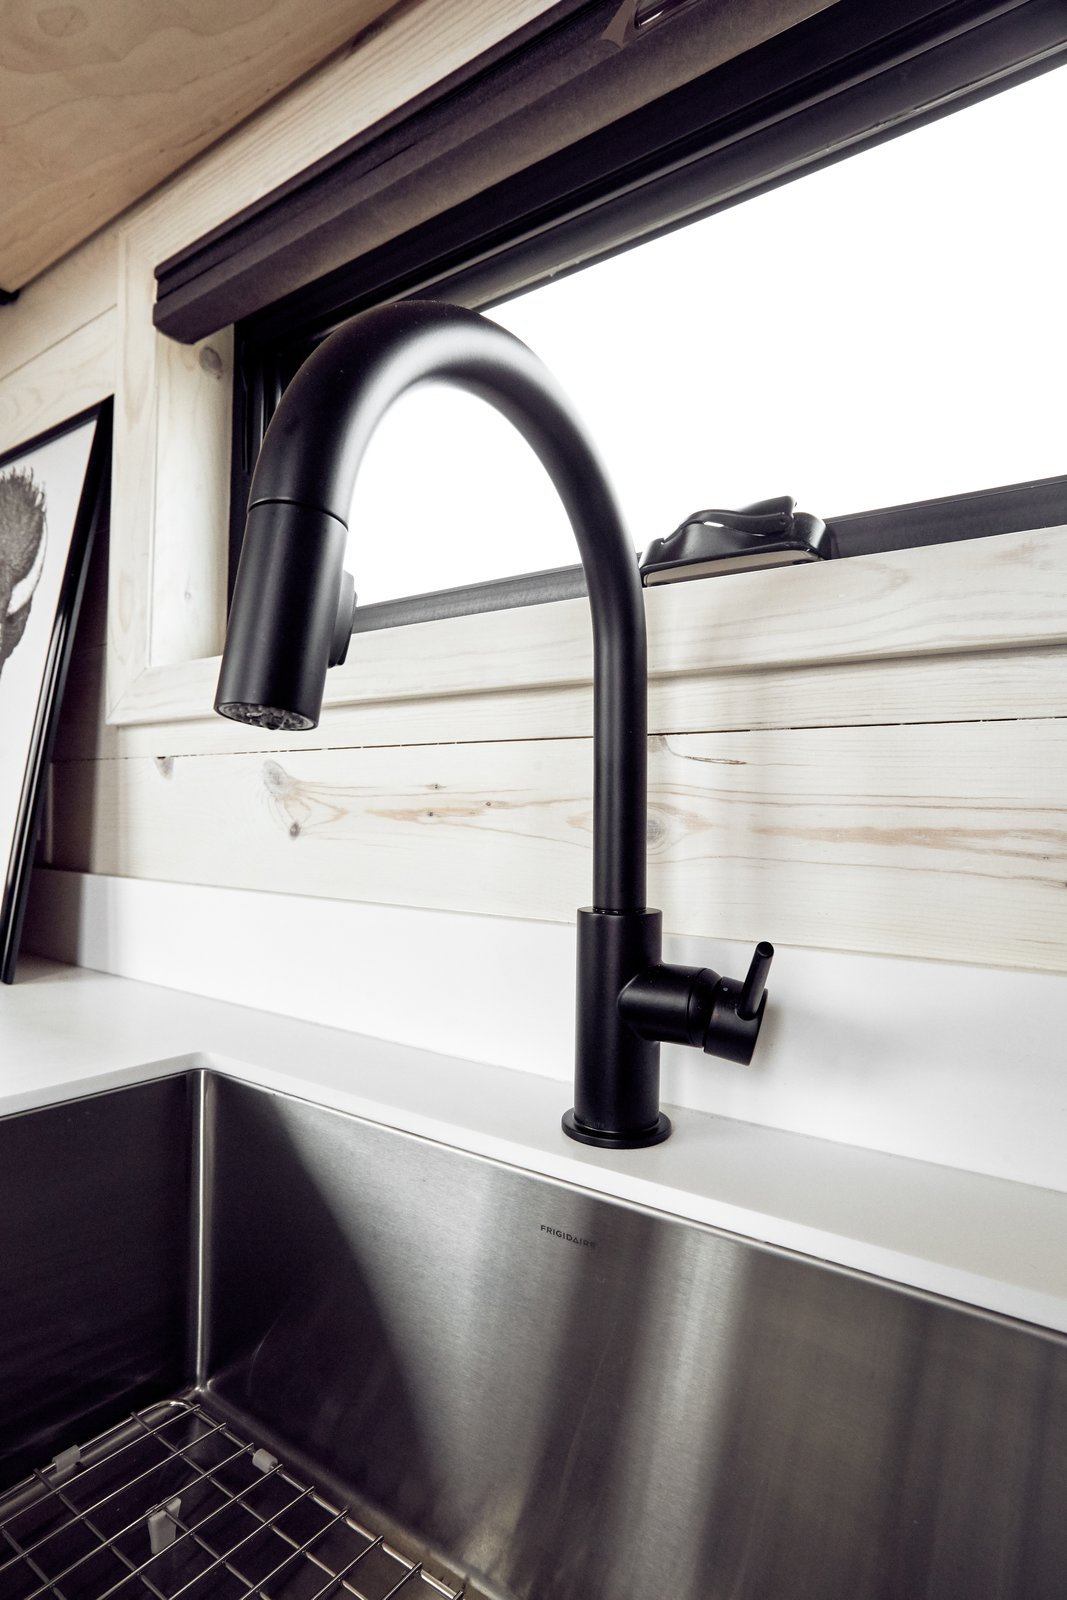 Large, stainless under-mounted sink makes real cooking and cleaning as easy as it is in a typical house.  Land Ark RV - Drake by Brian Buzarde